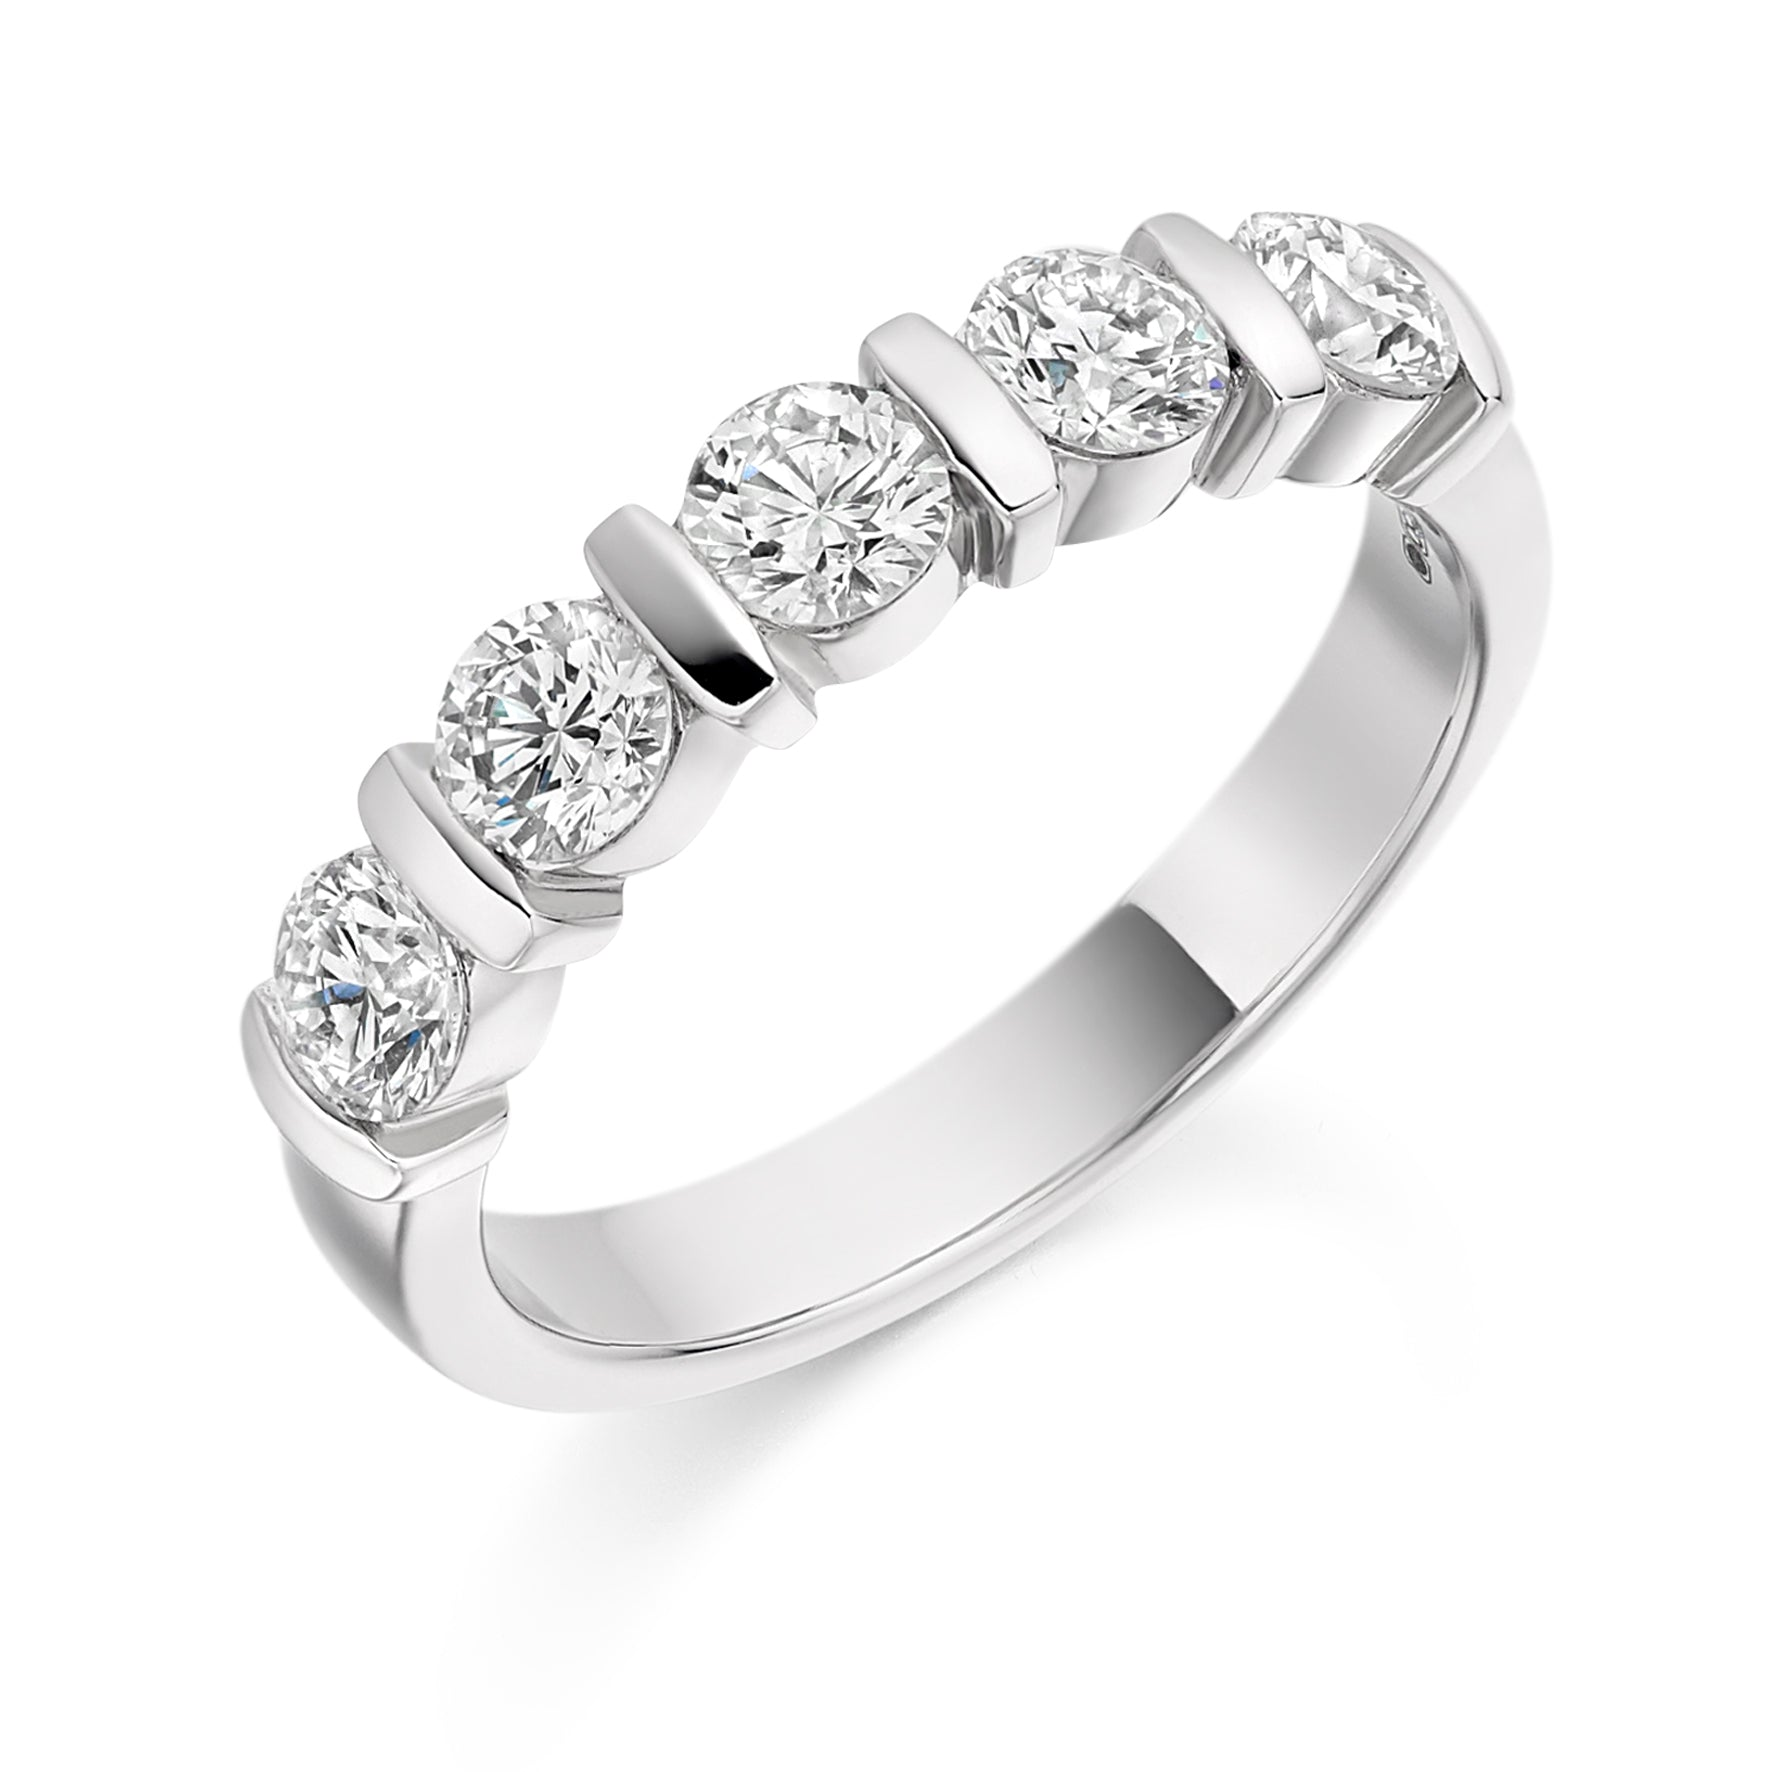 18ct White Gold 1ct Round Brilliant Cut Diamonds Bar Set Vintage Wedding Ring